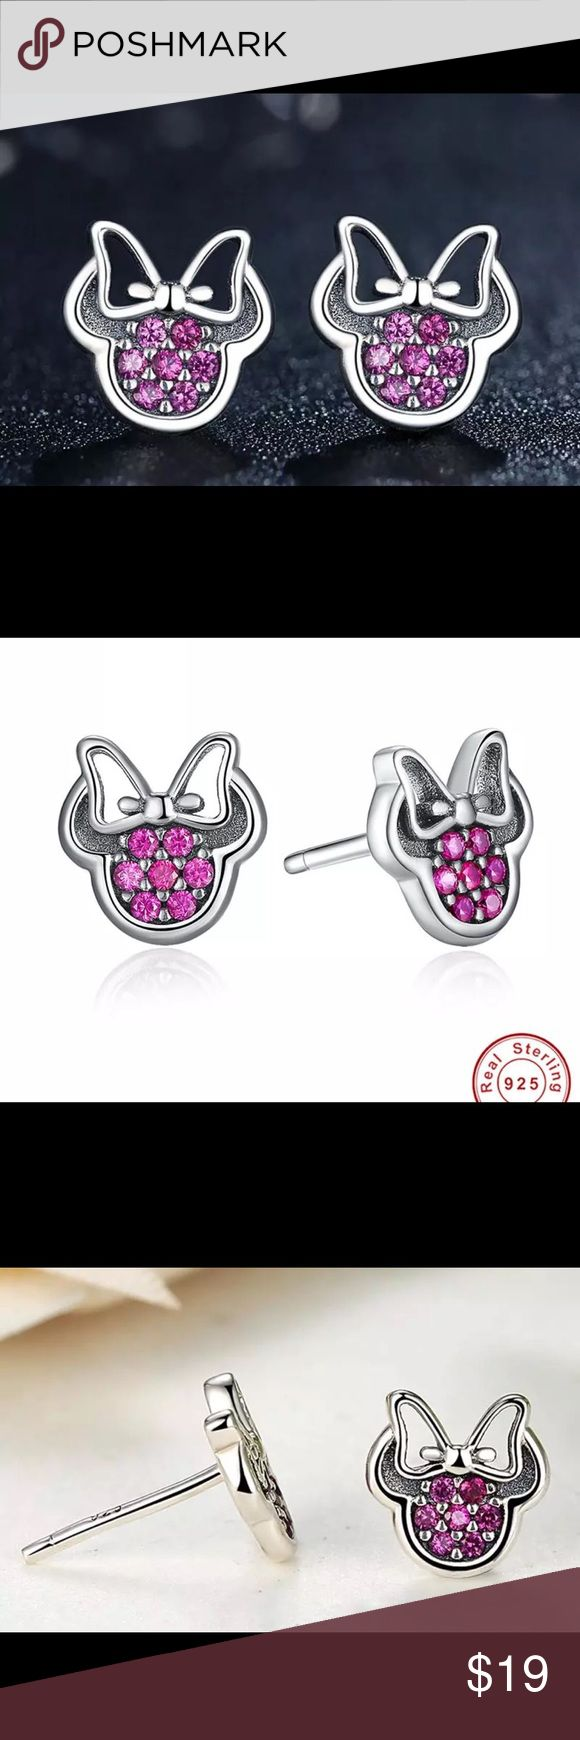 Minnie Mouse Disney Earrings 925 Silver Boutique